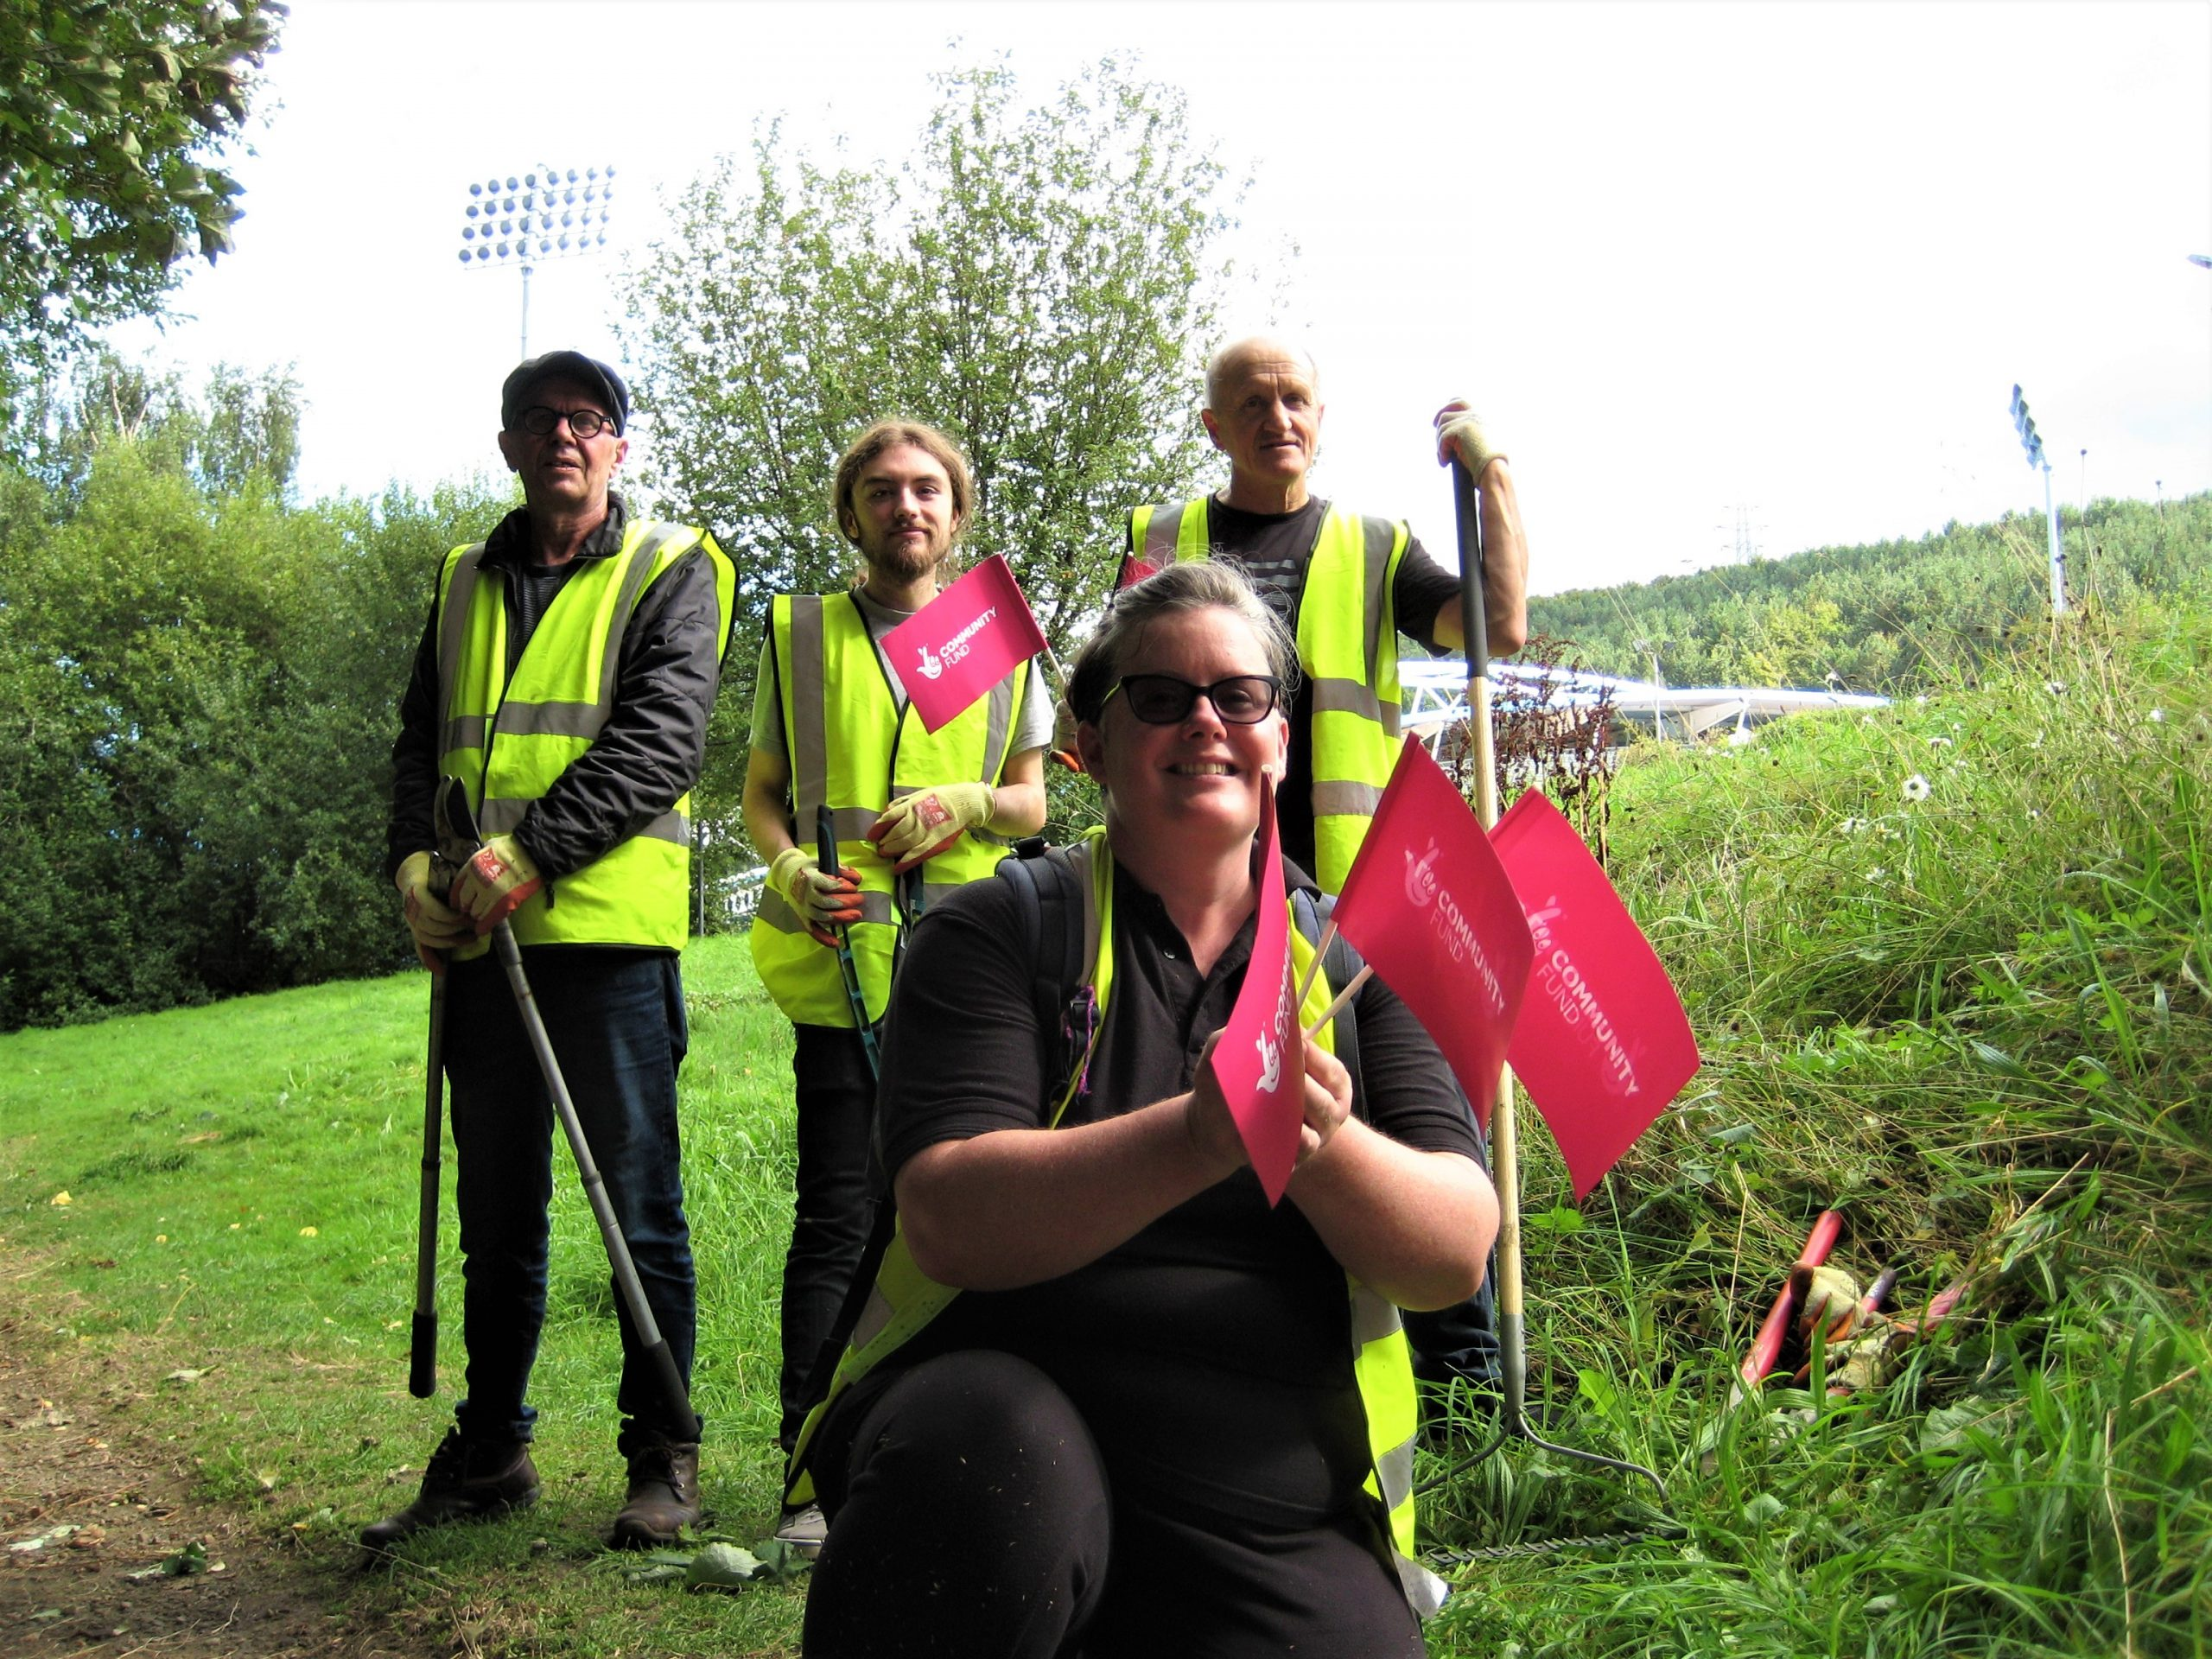 EPIKs Celebrate New Funding for Volunteering Through The National Lottery Communities Fund